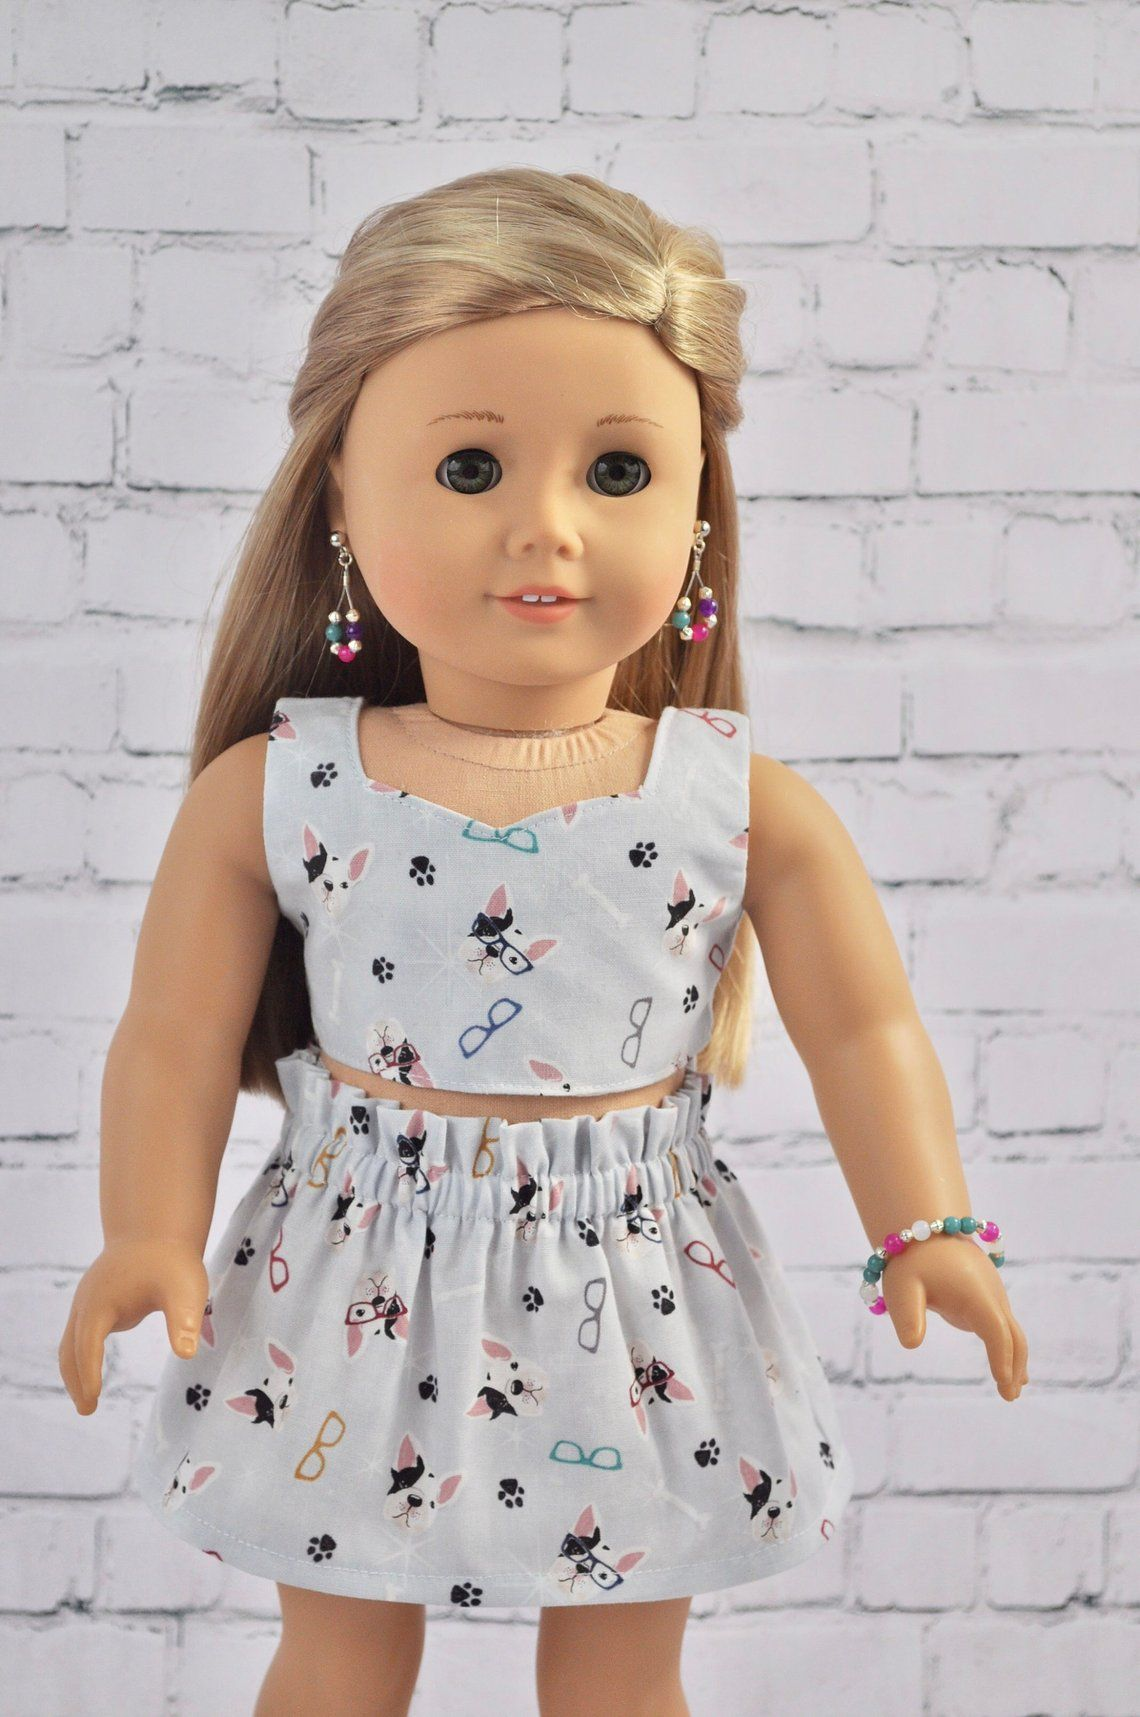 dolls NEW American Girl Sunshine Garden Outfit for 18 in Doll Not included!